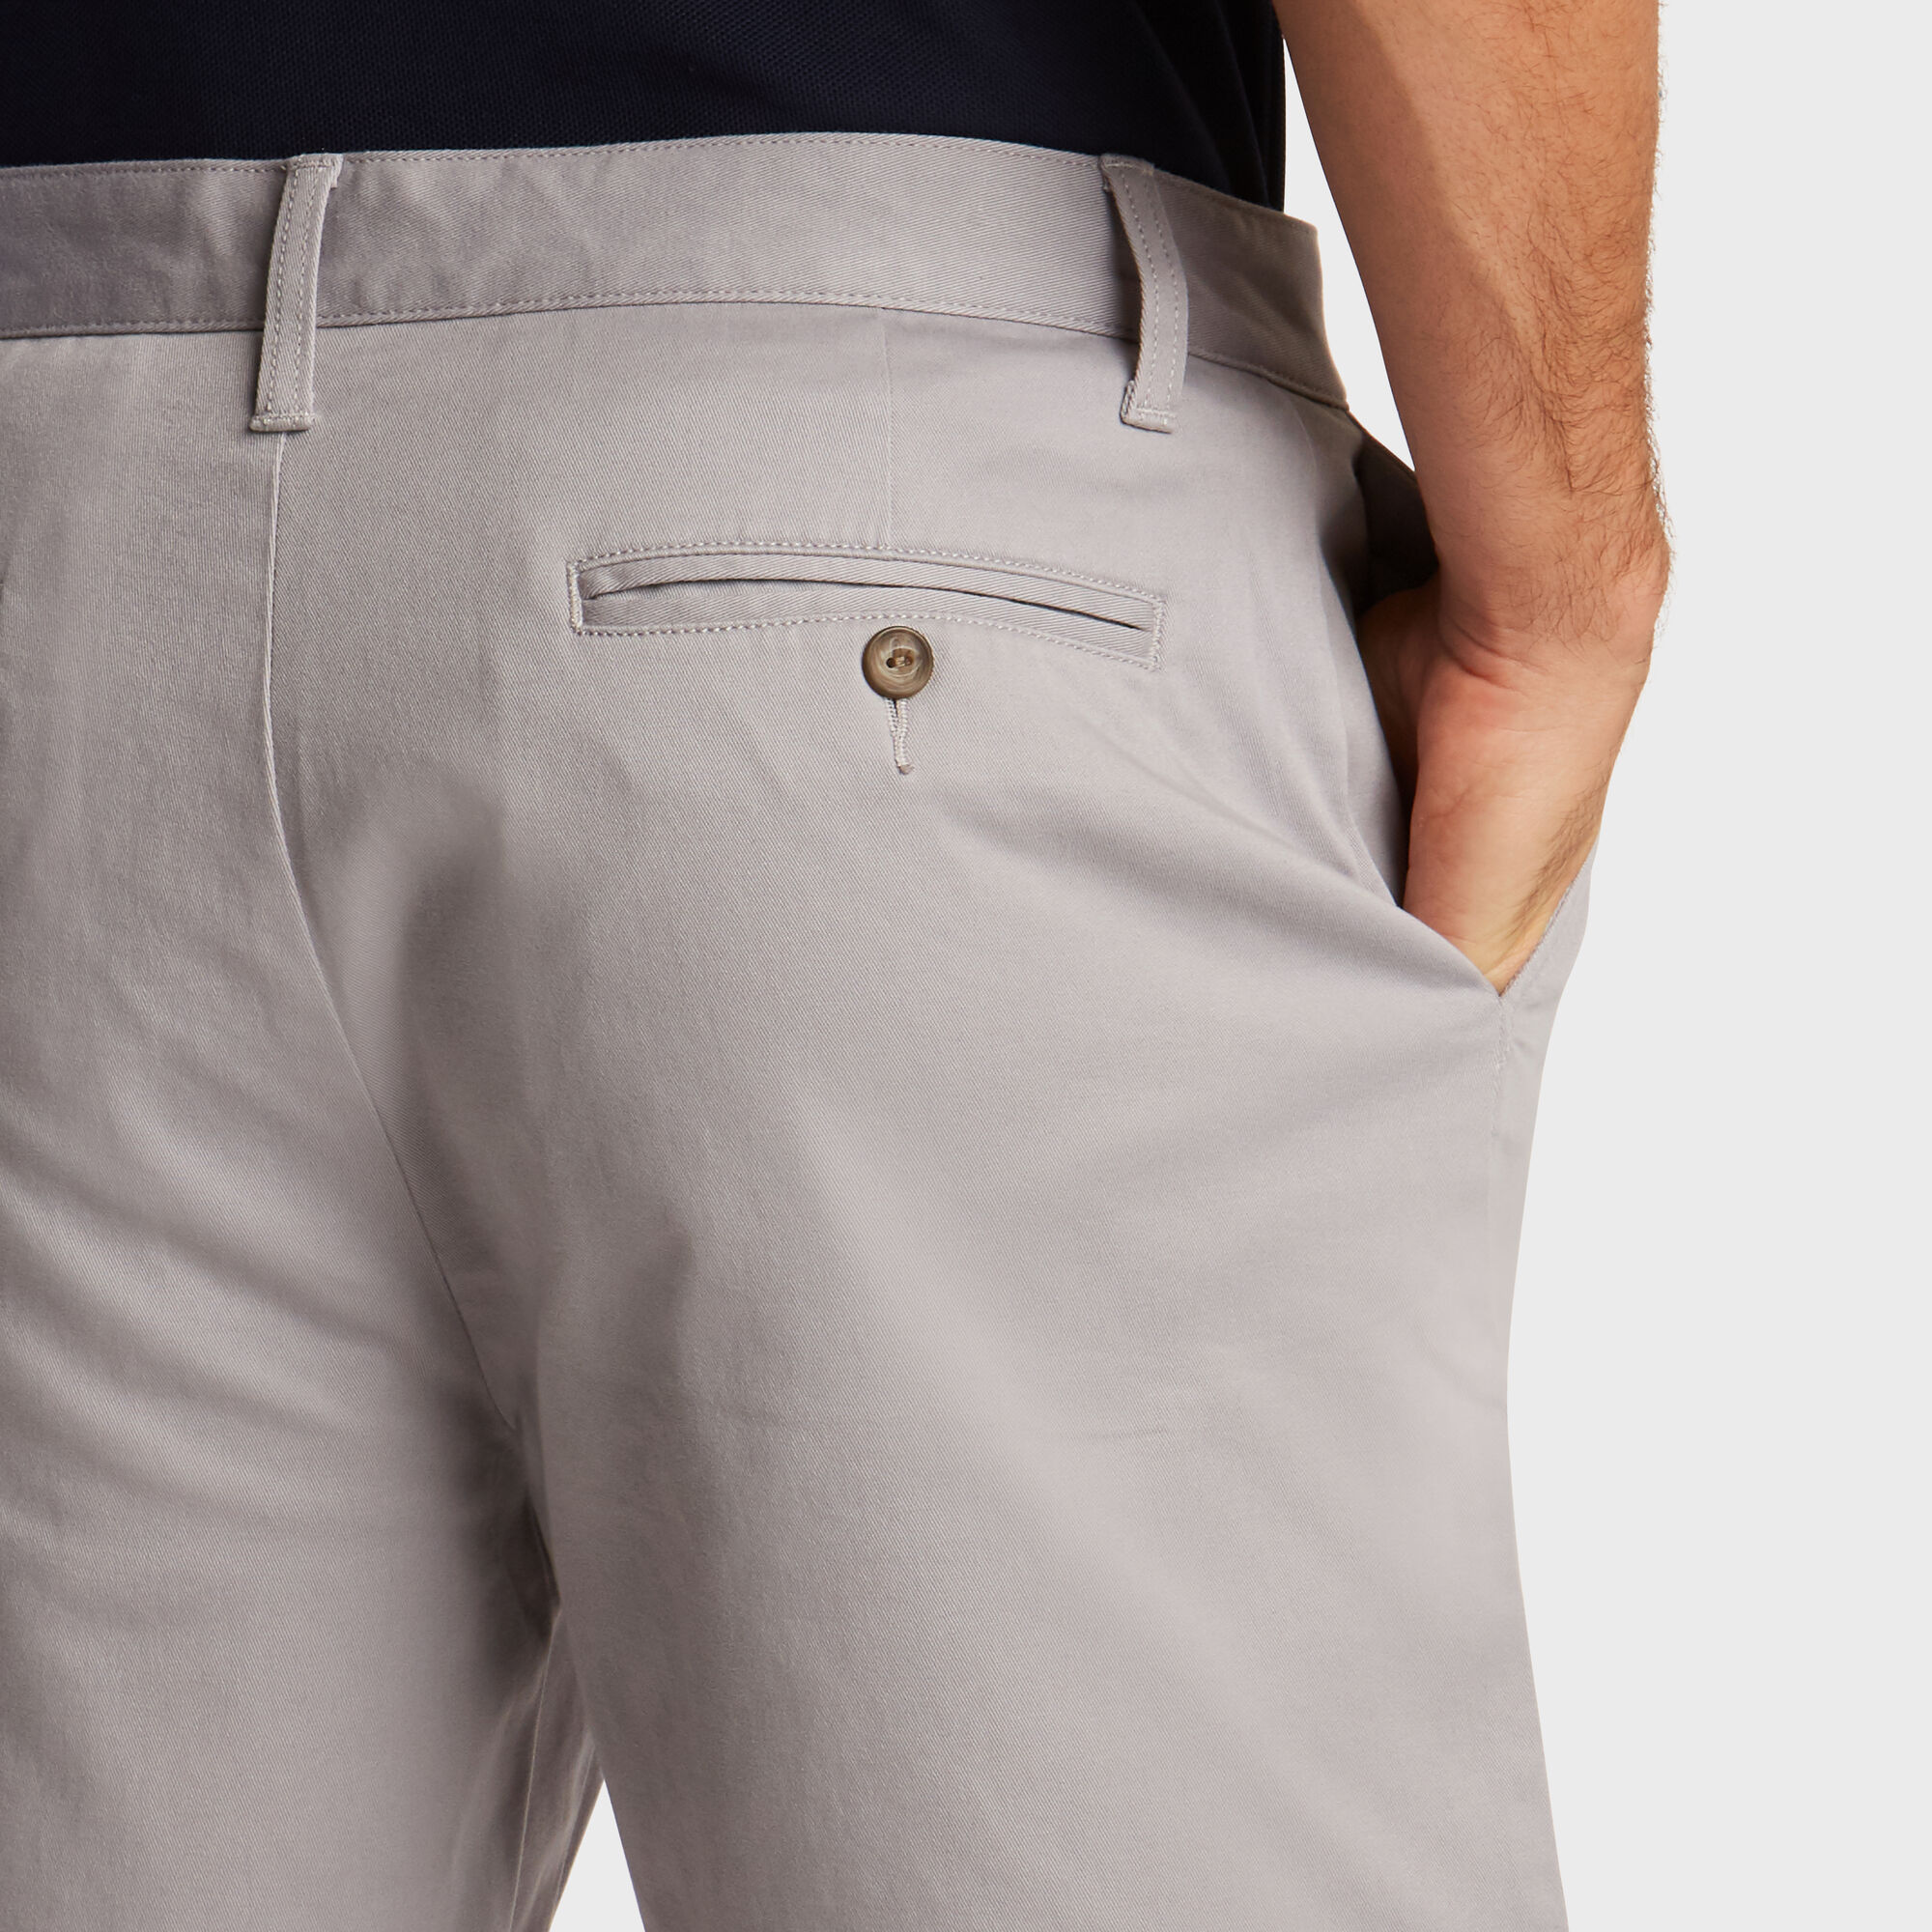 Nautica-Mens-8-5-034-Classic-Fit-Deck-Short-With-Stretch thumbnail 7